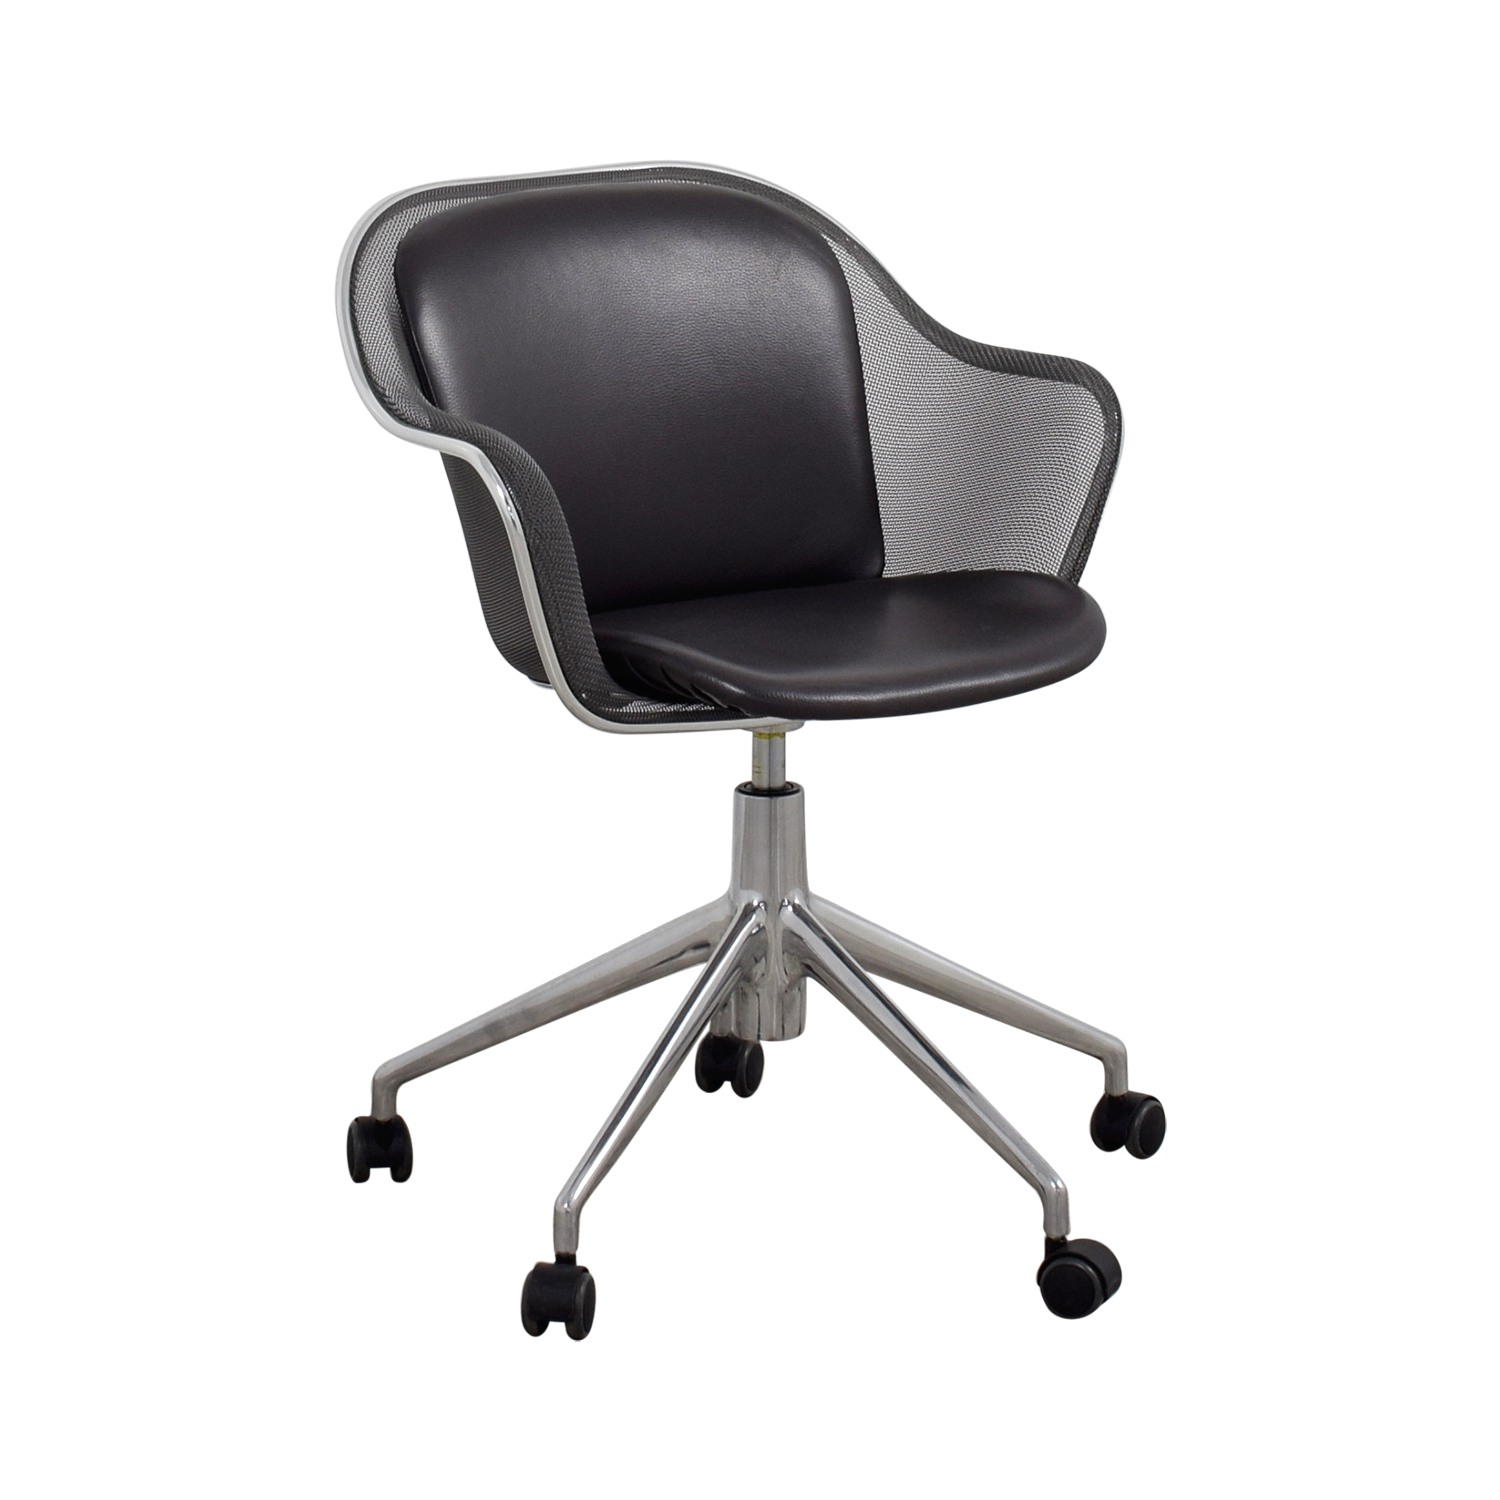 grey leather desk chair cute office mat 90 off b and italia